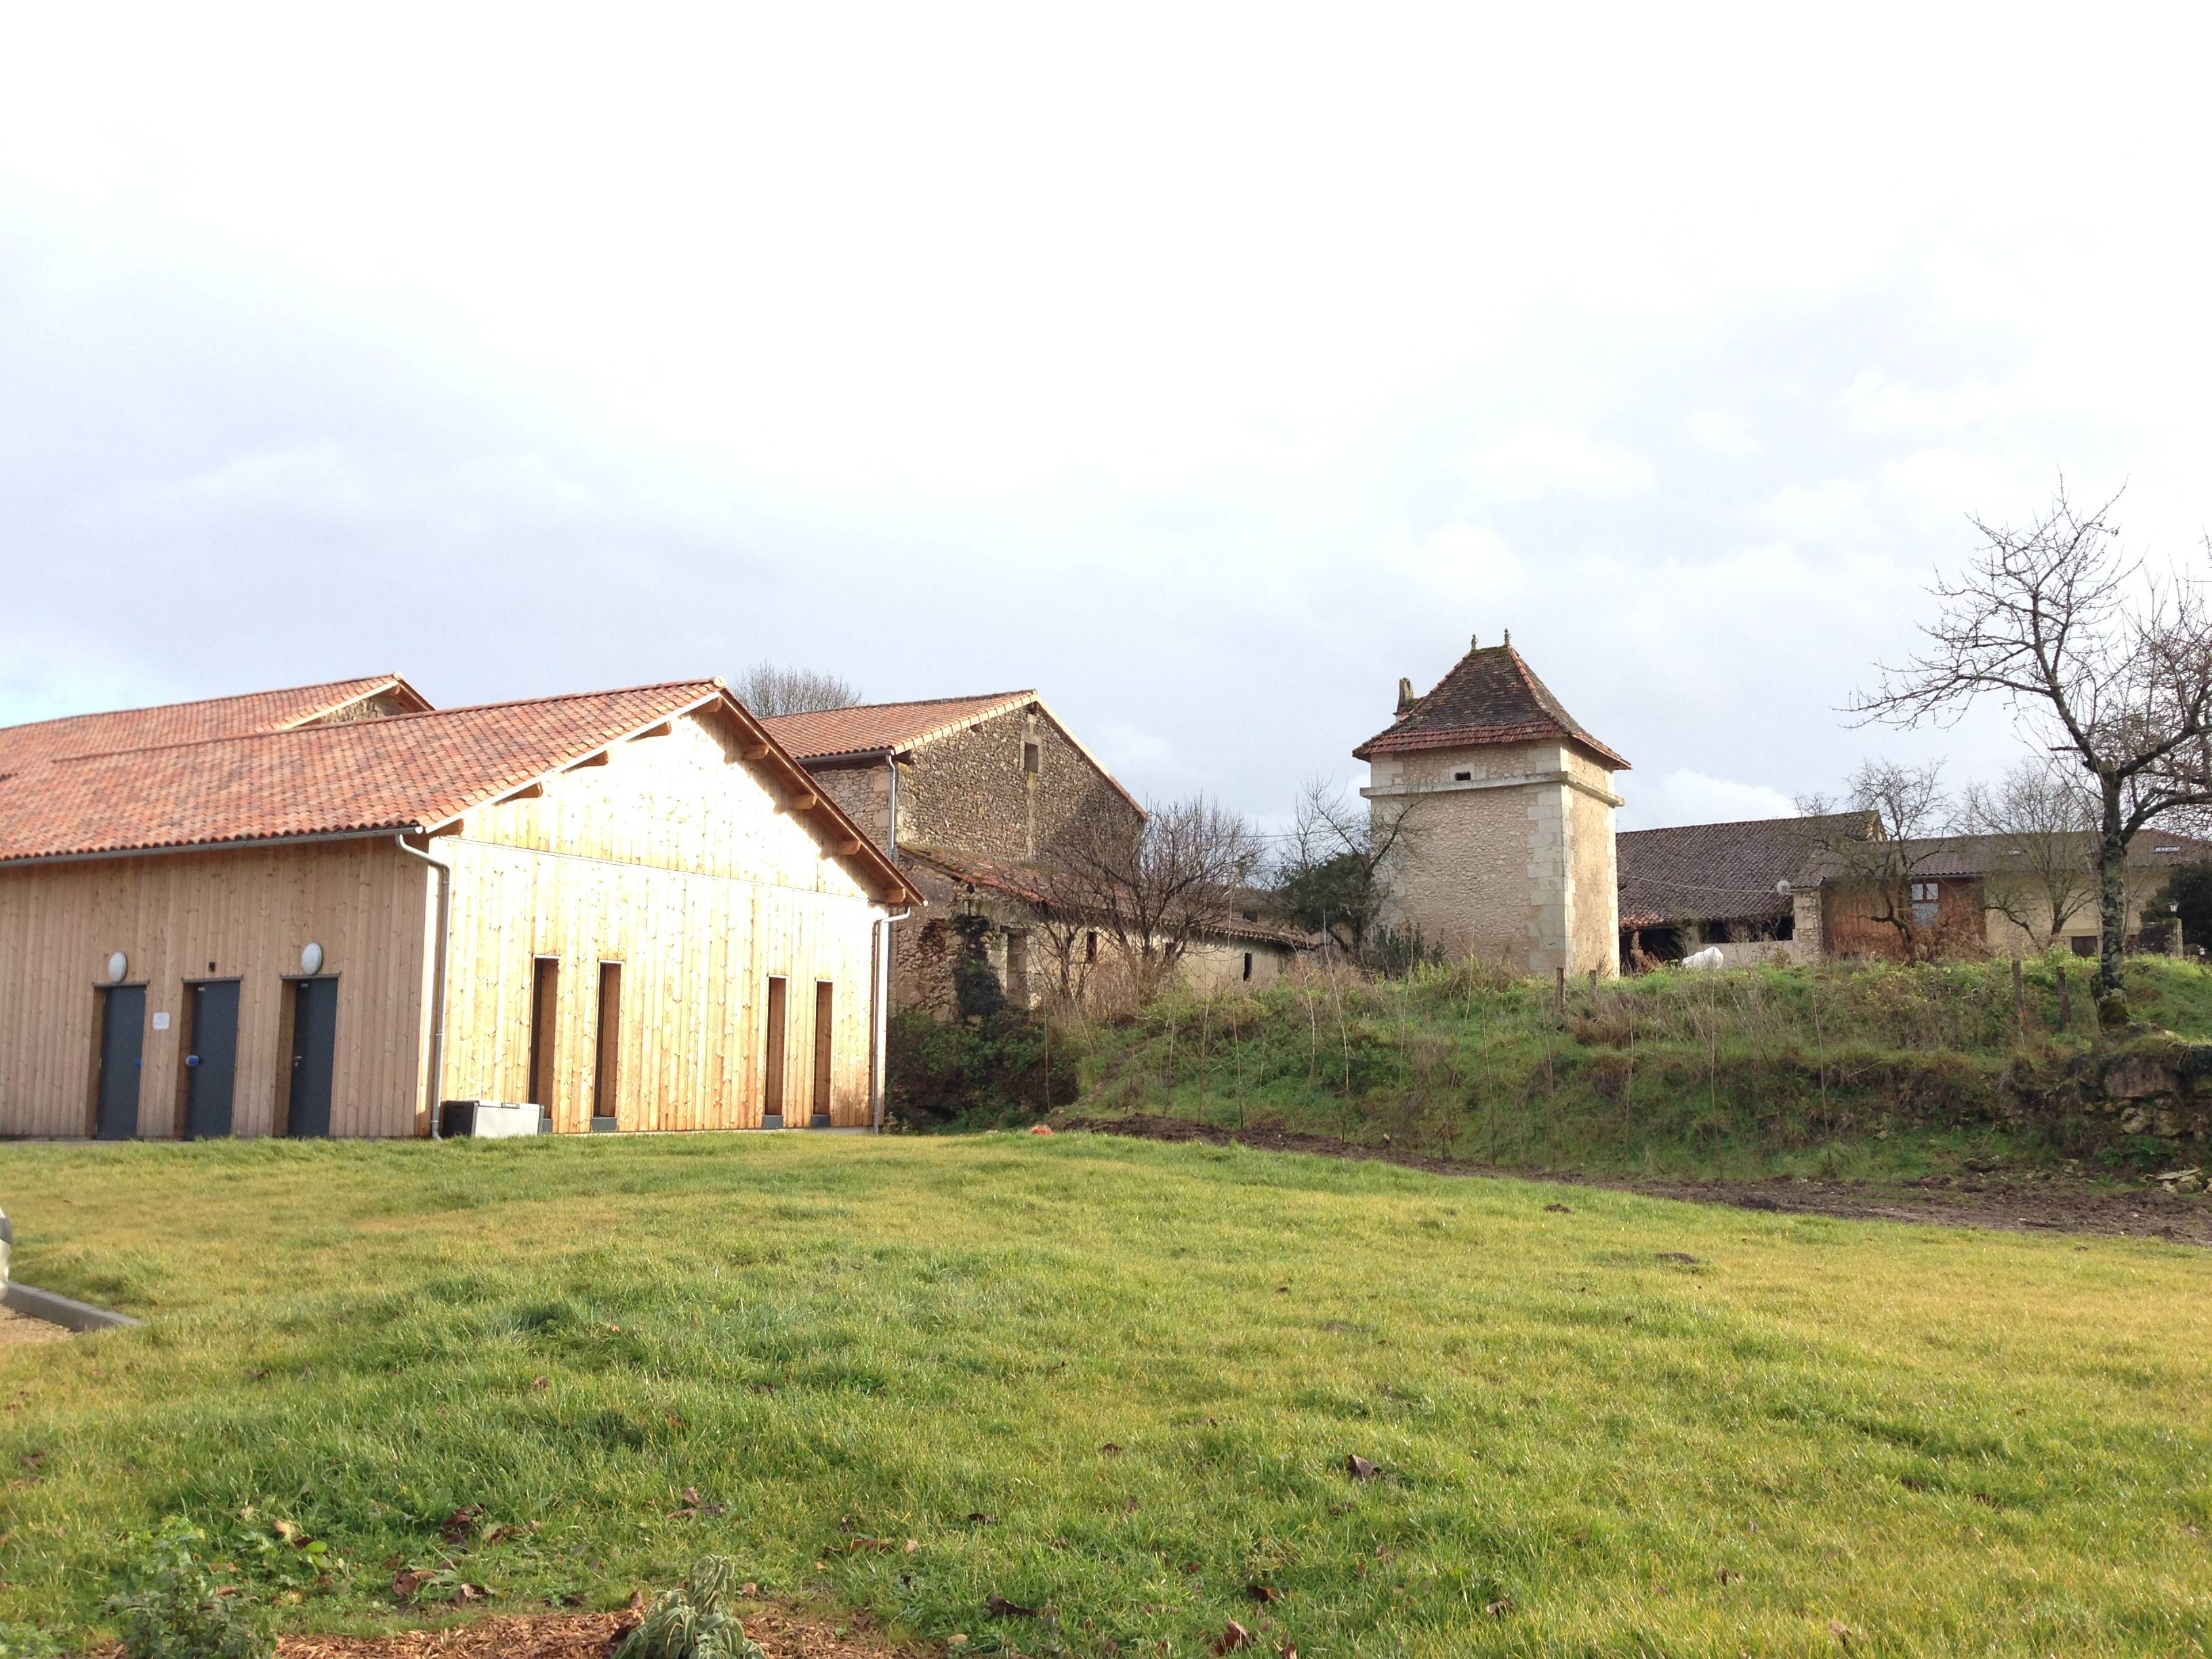 2013 structure with 1600s chateaux